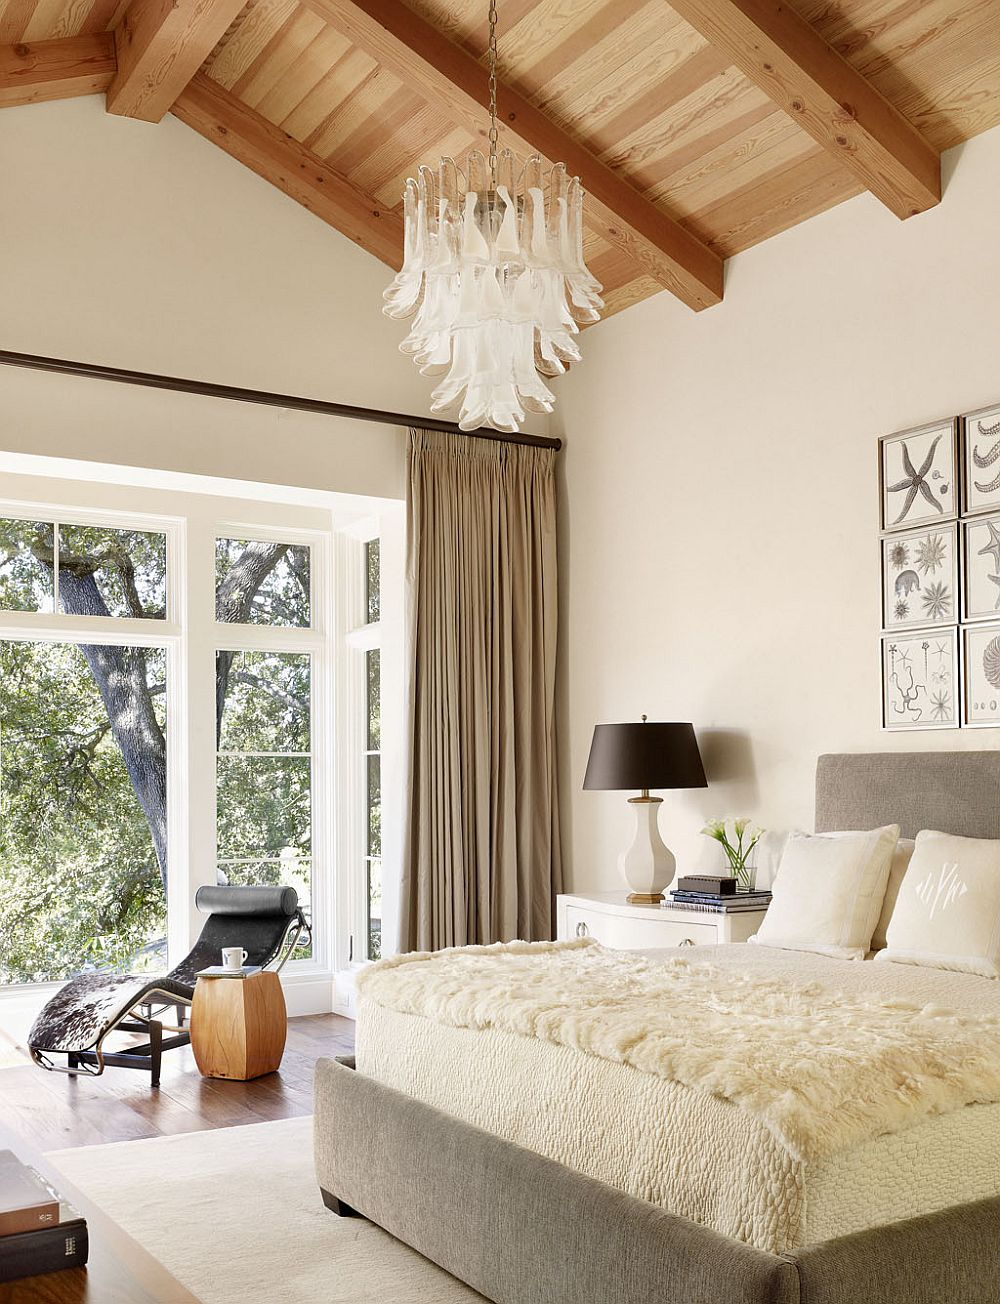 Curtains-in-brown-separate-the-bedroom-from-the-landscape-outside-91366